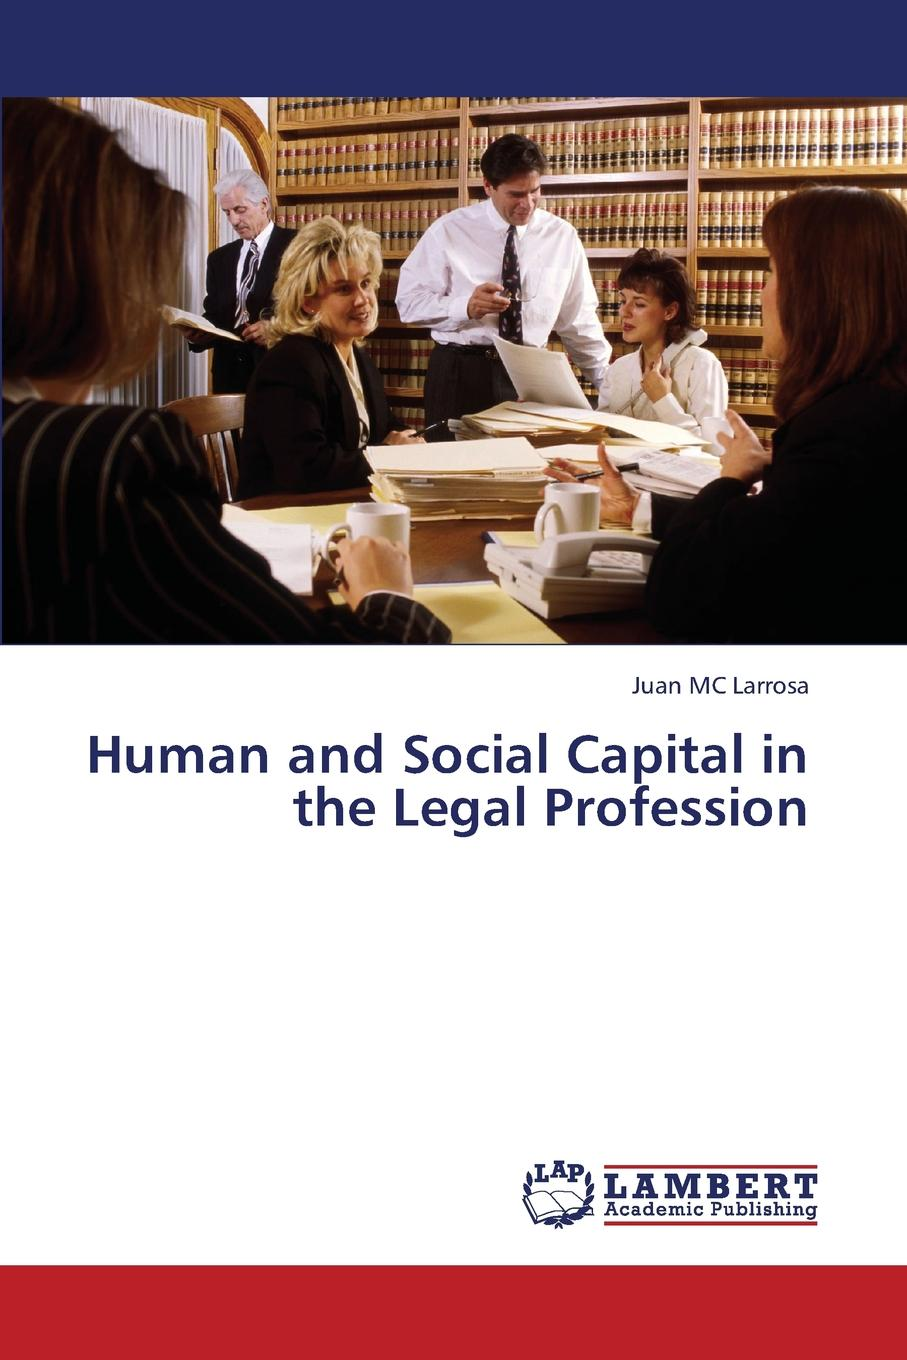 Larrosa Juan MC Human and Social Capital in the Legal Profession juan ramirez handbook of basel iii capital enhancing bank capital in practice